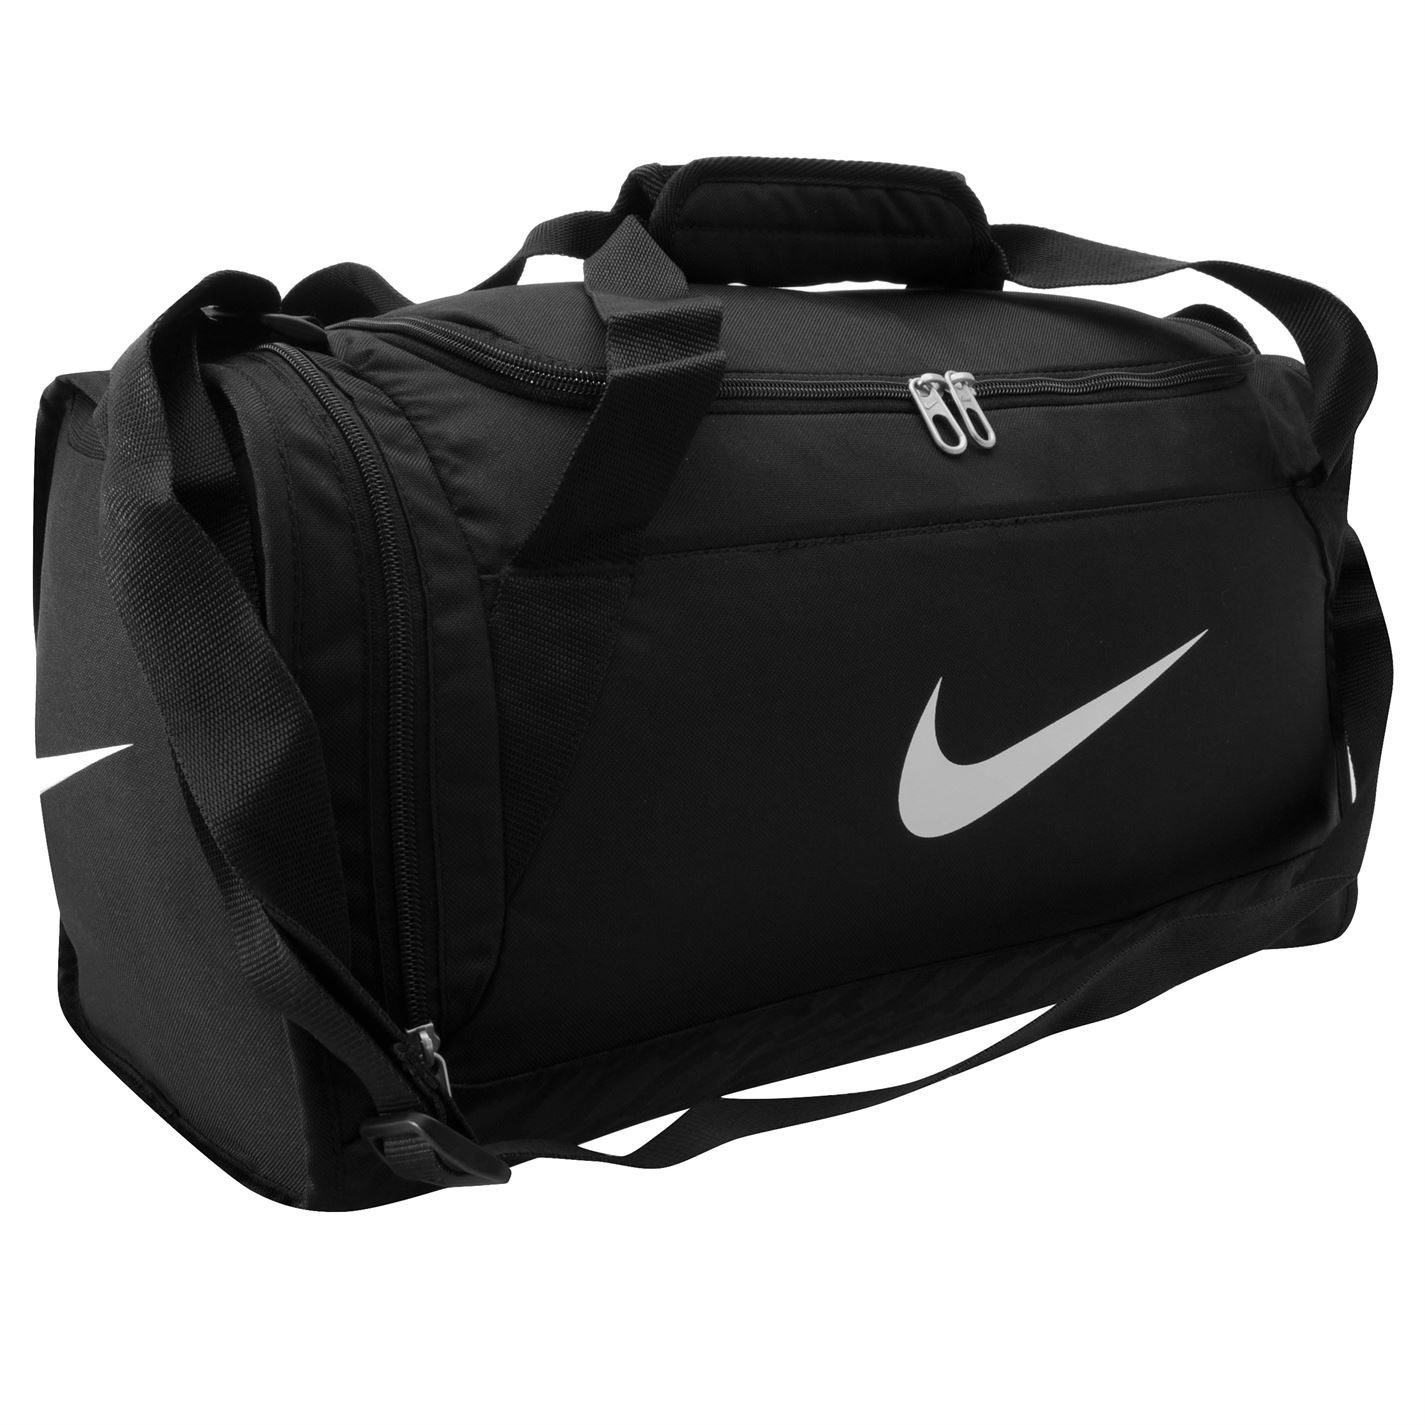 nike brasilia xs grip duffle bag black white gym sports bag genuine ebay. Black Bedroom Furniture Sets. Home Design Ideas